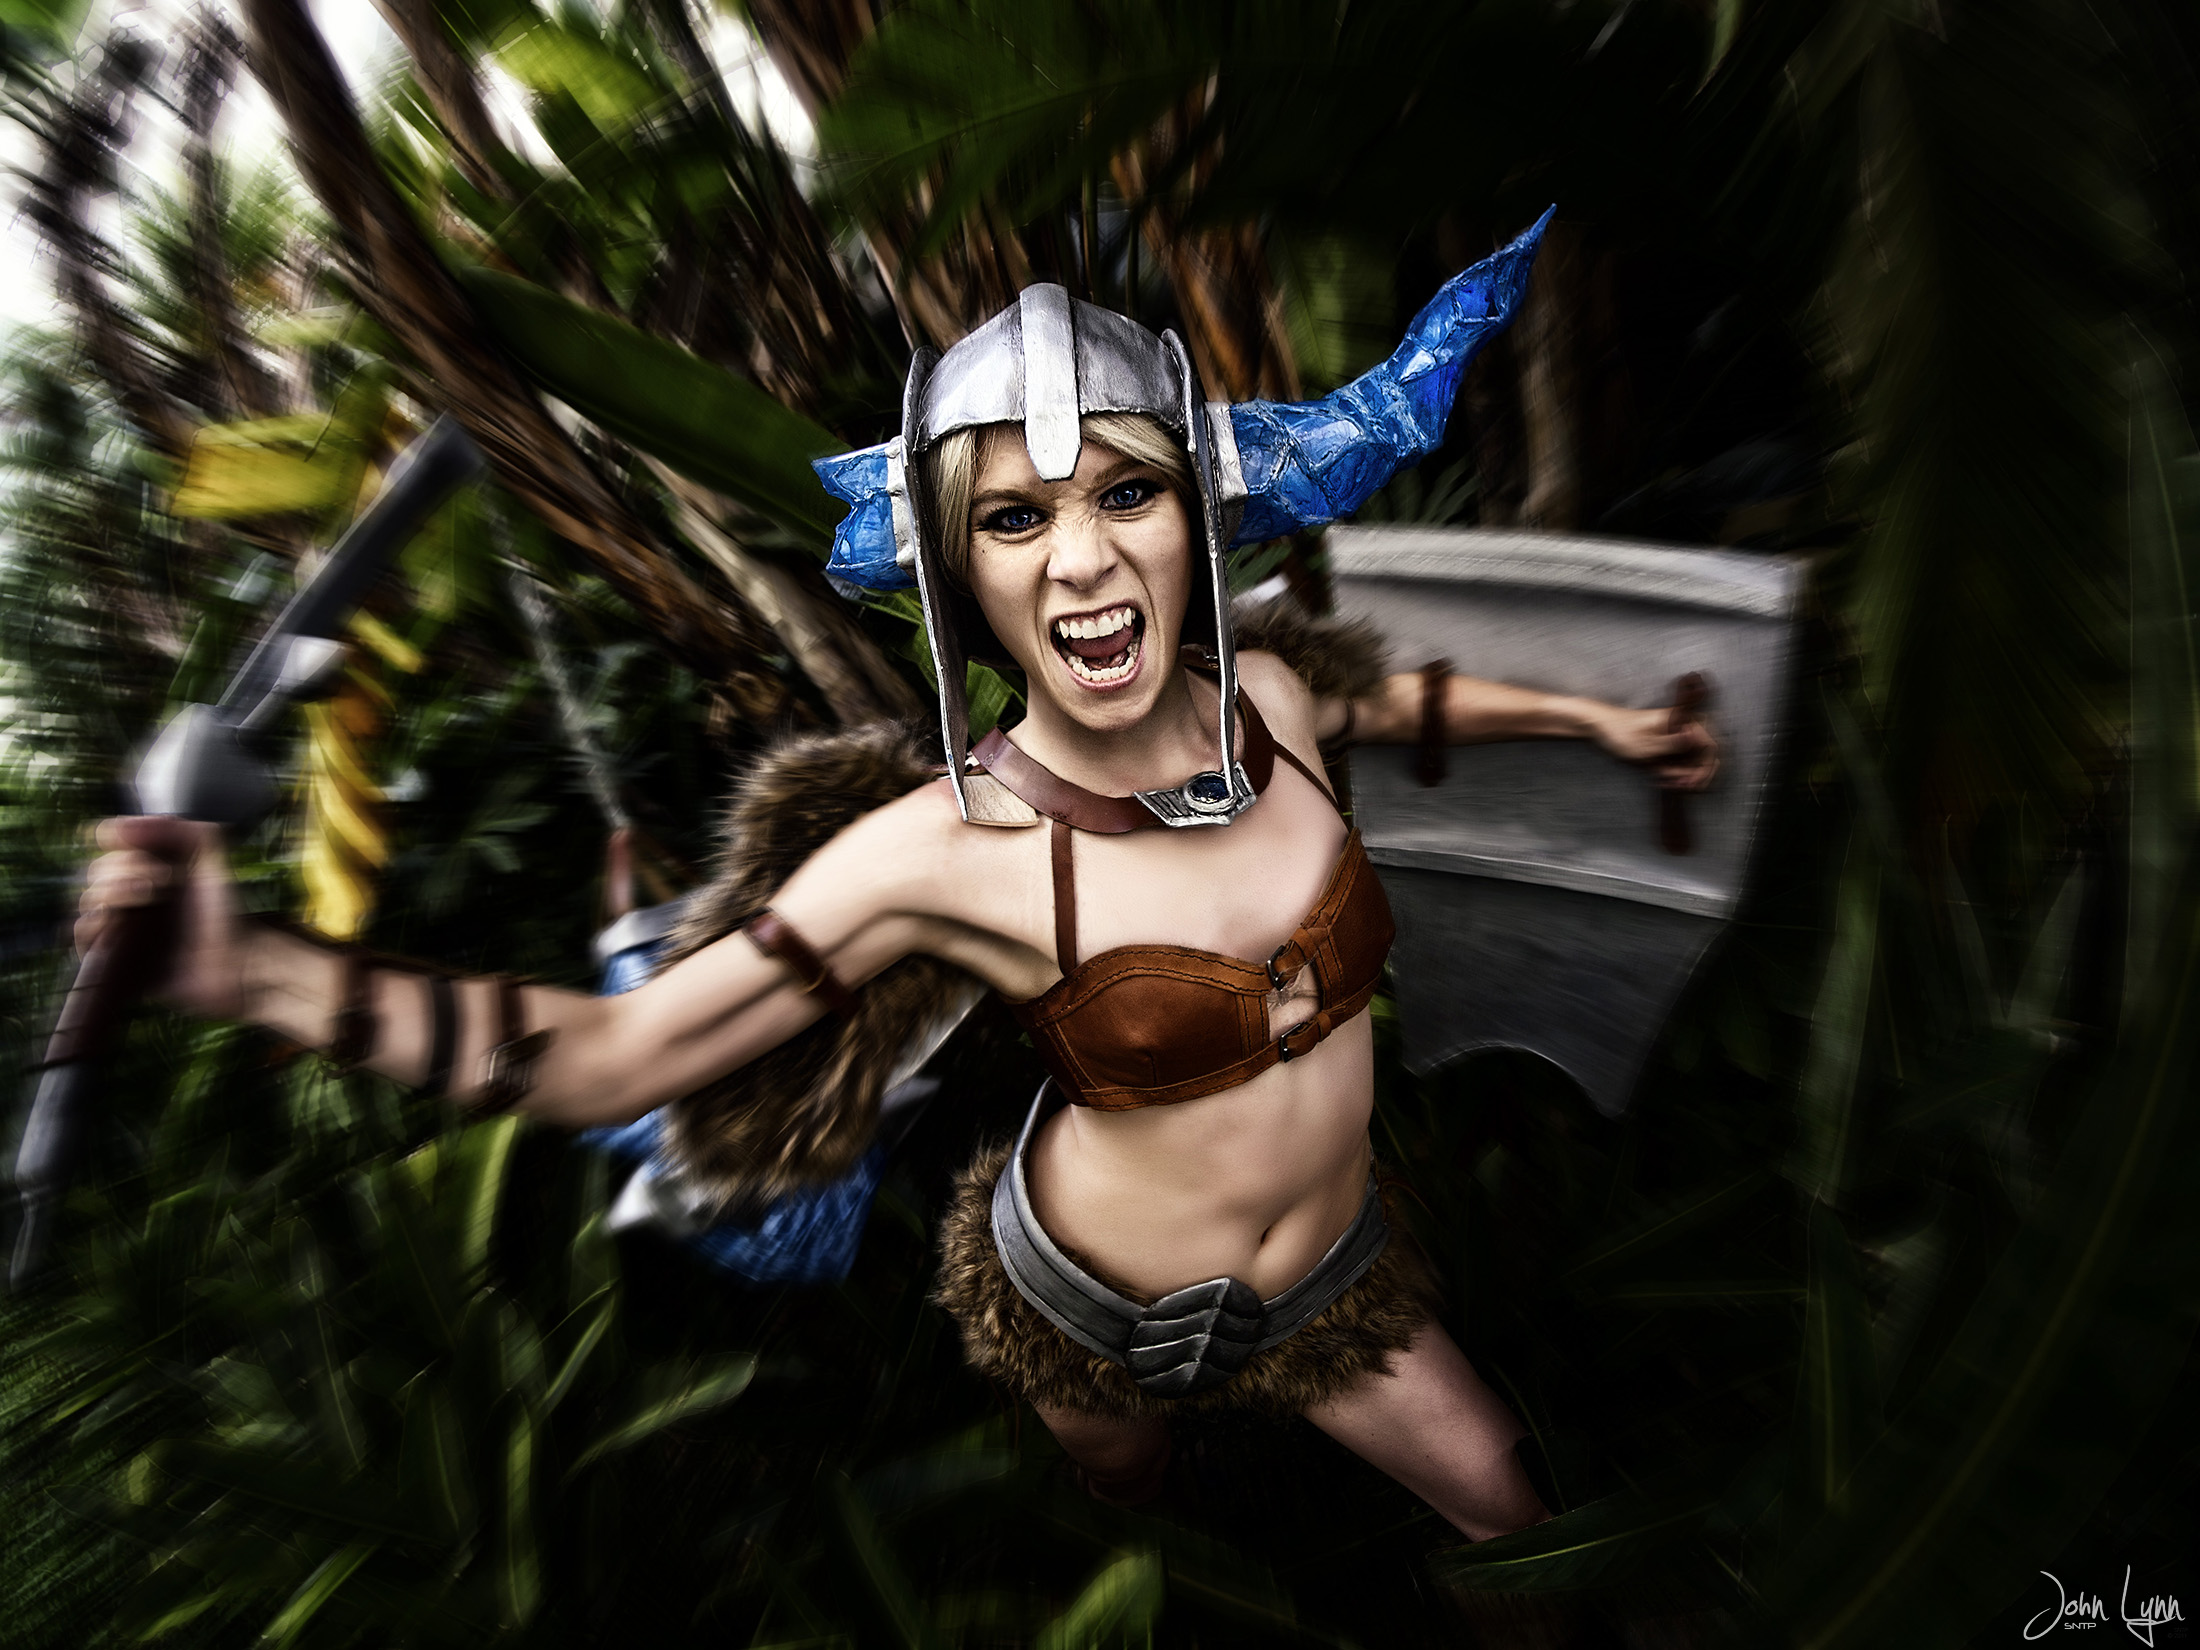 Sejuani Portrait: Sejuani Ganks From The Jungle! By SNTP On DeviantArt